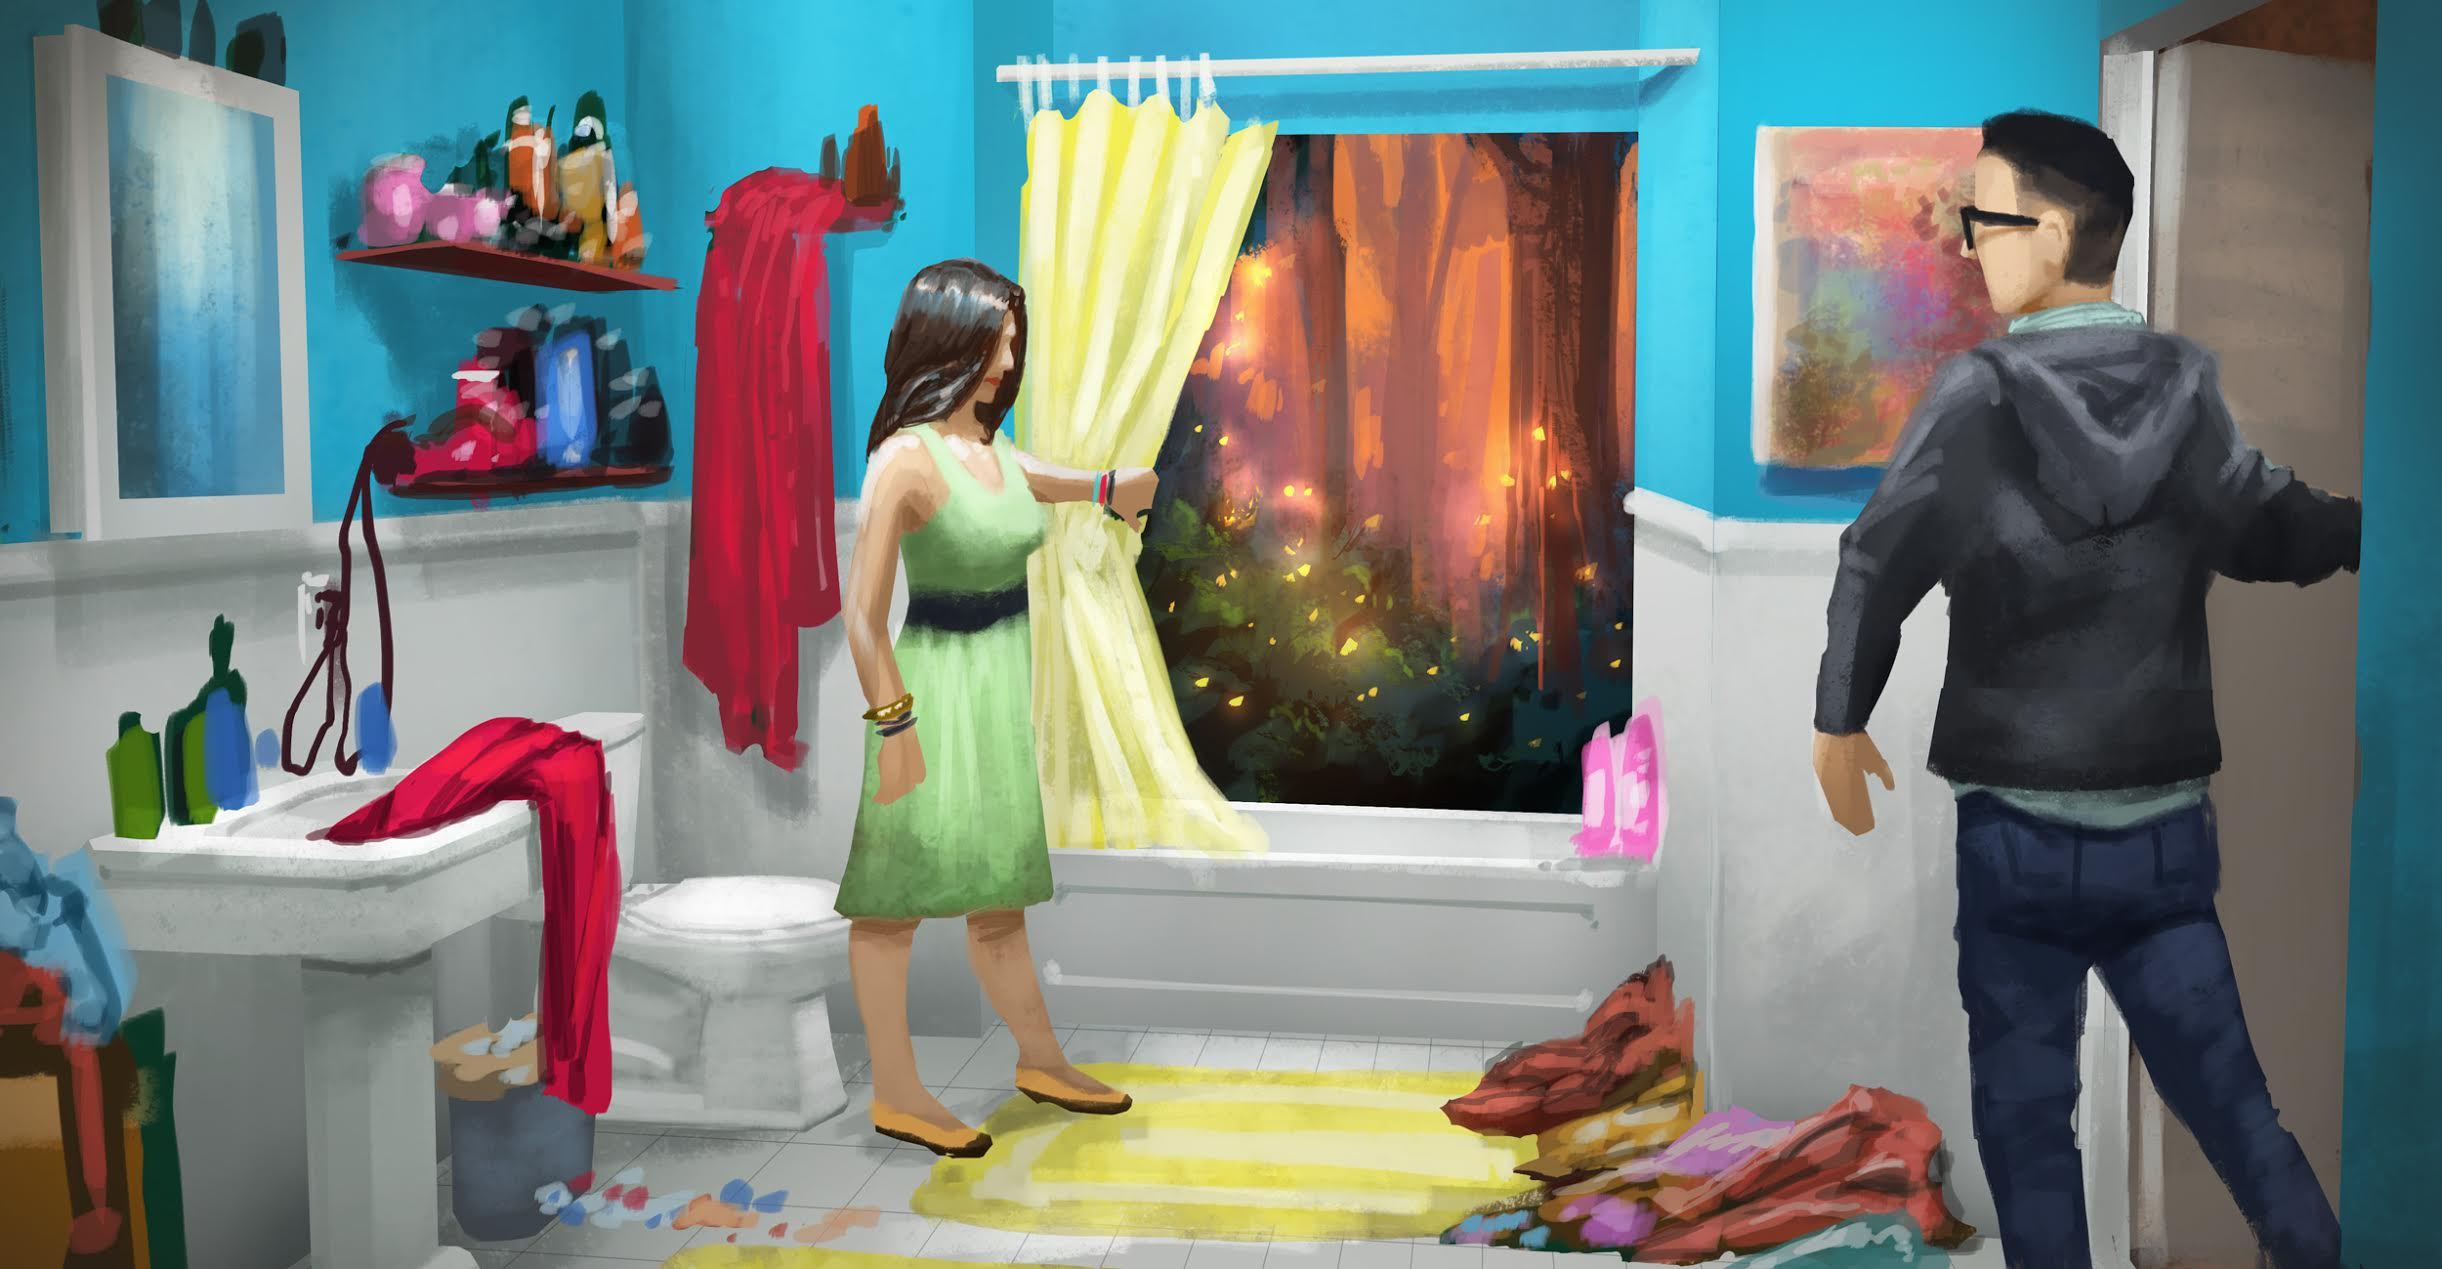 Guests move through the bathroom scene into the forest.  Illustration by Chris Bradley .